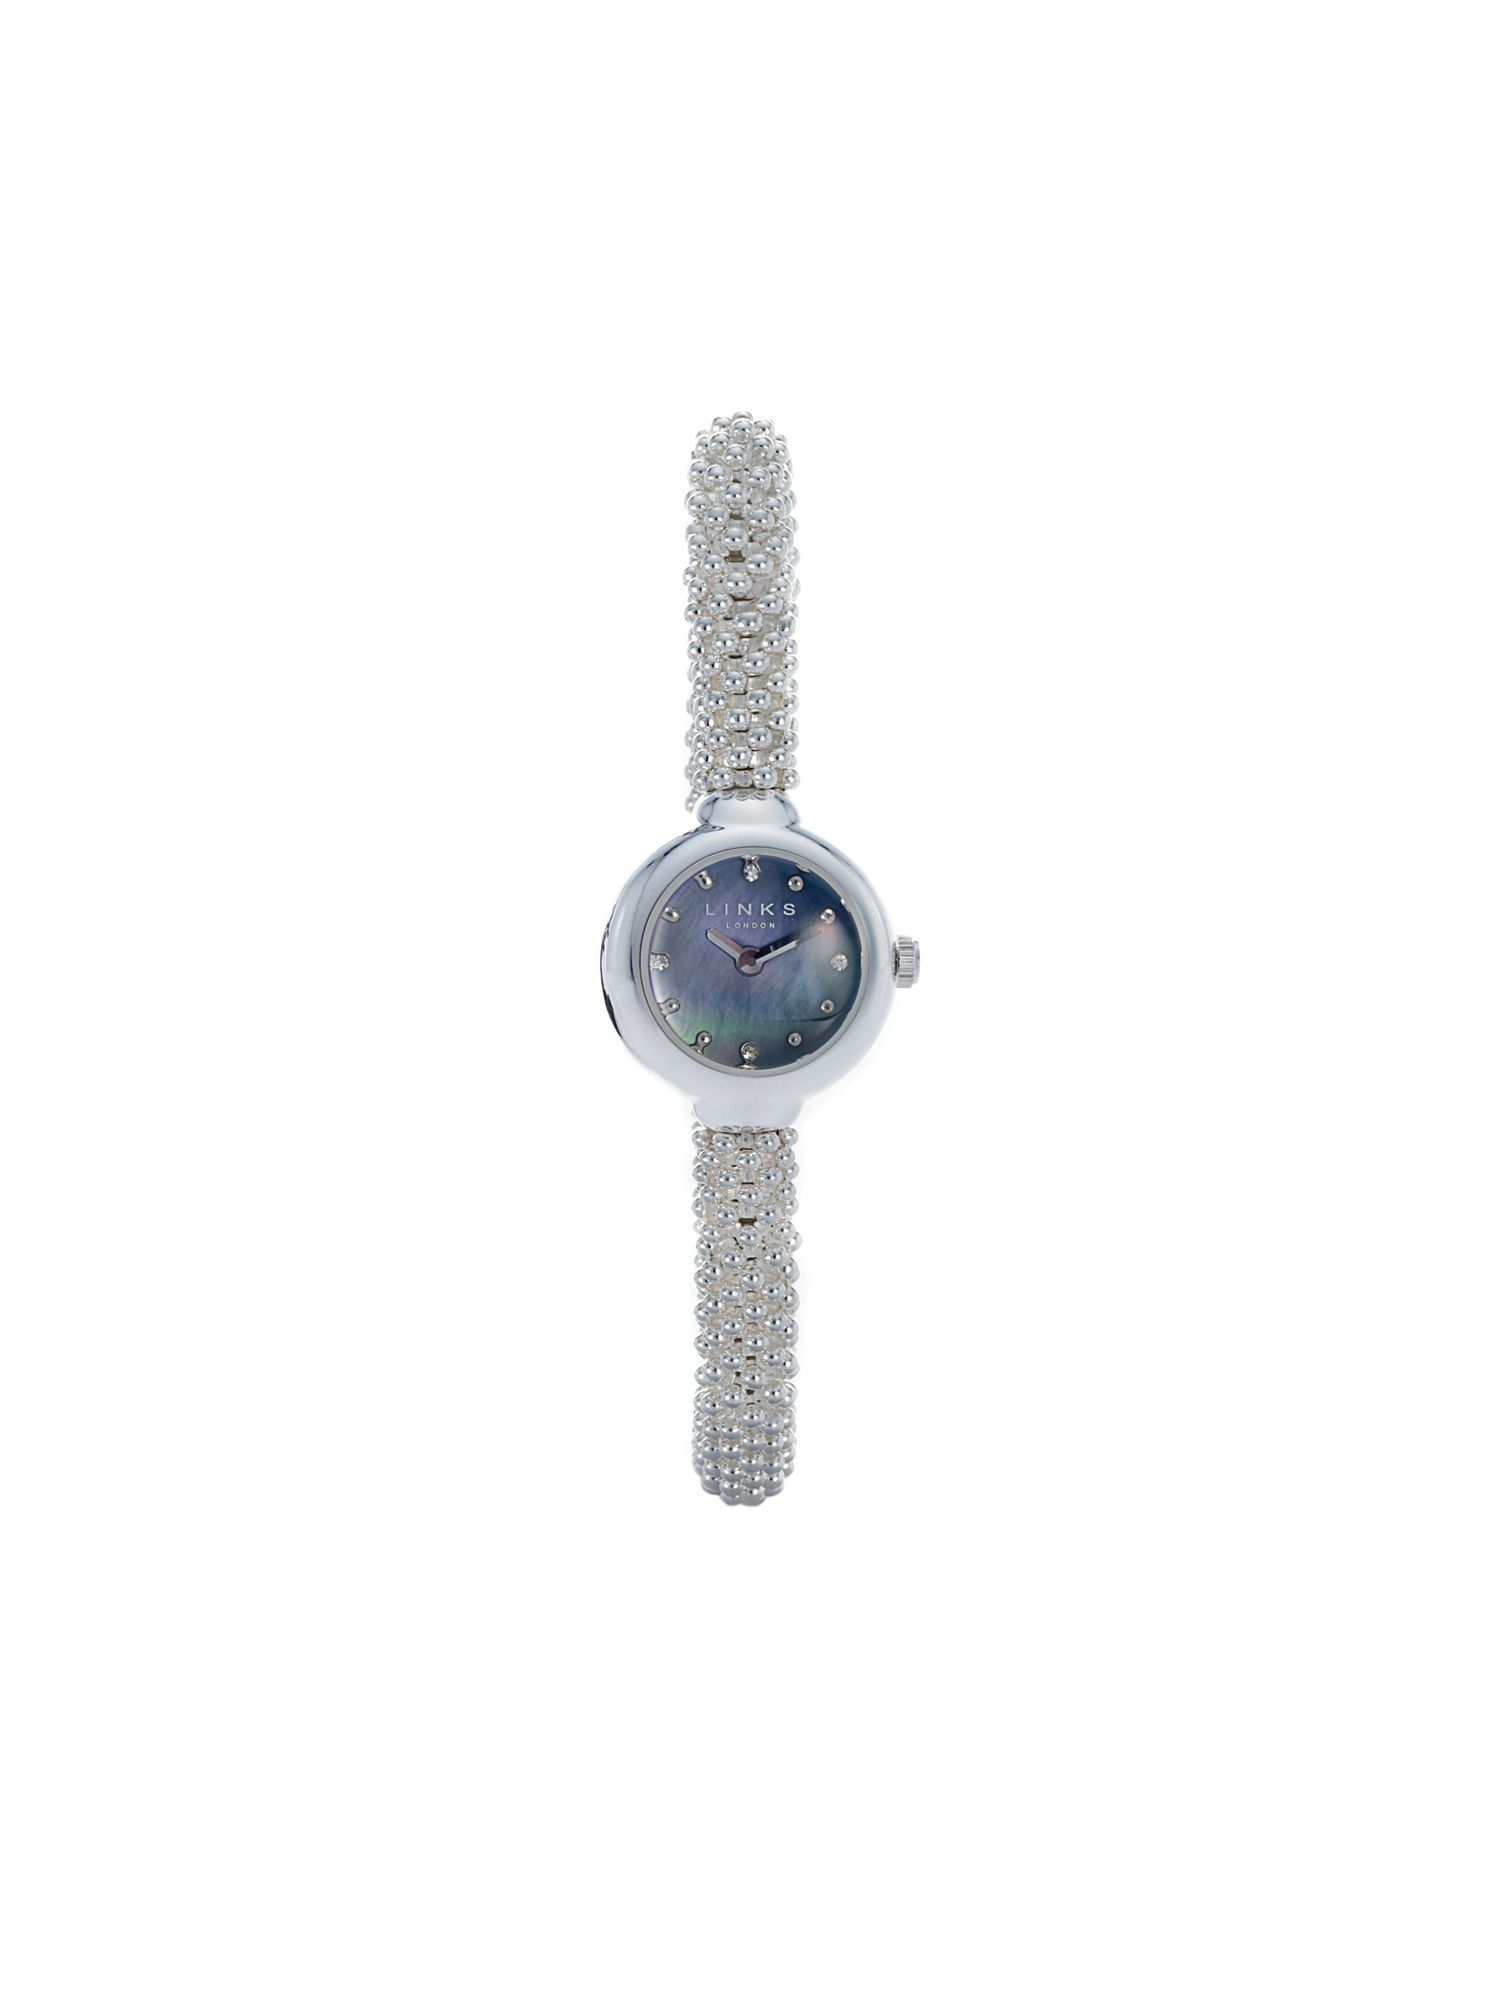 Links of London Effervescence Star Sapphire Watch in Black Black